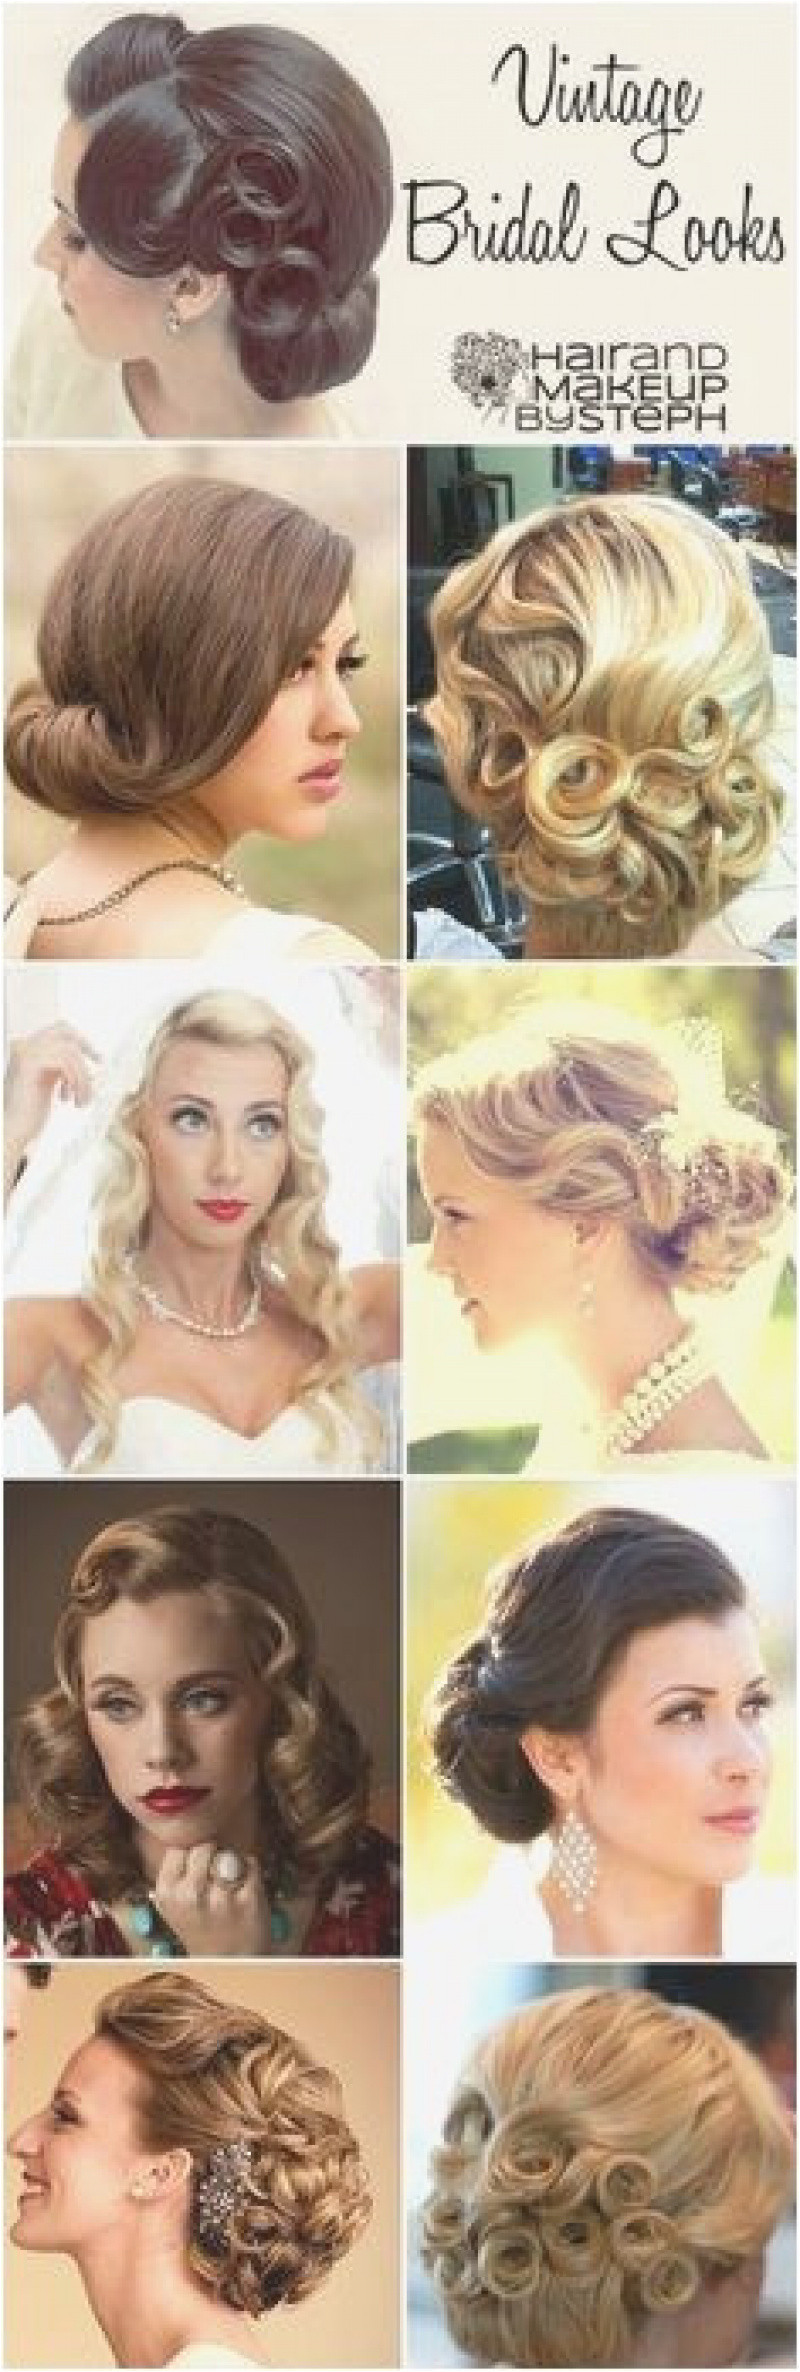 Updo Wedding Hairstyles Bridesmaids Lovely Easy Do It Yourself Hairstyles Elegant Lehenga Hairstyle 0d Updos